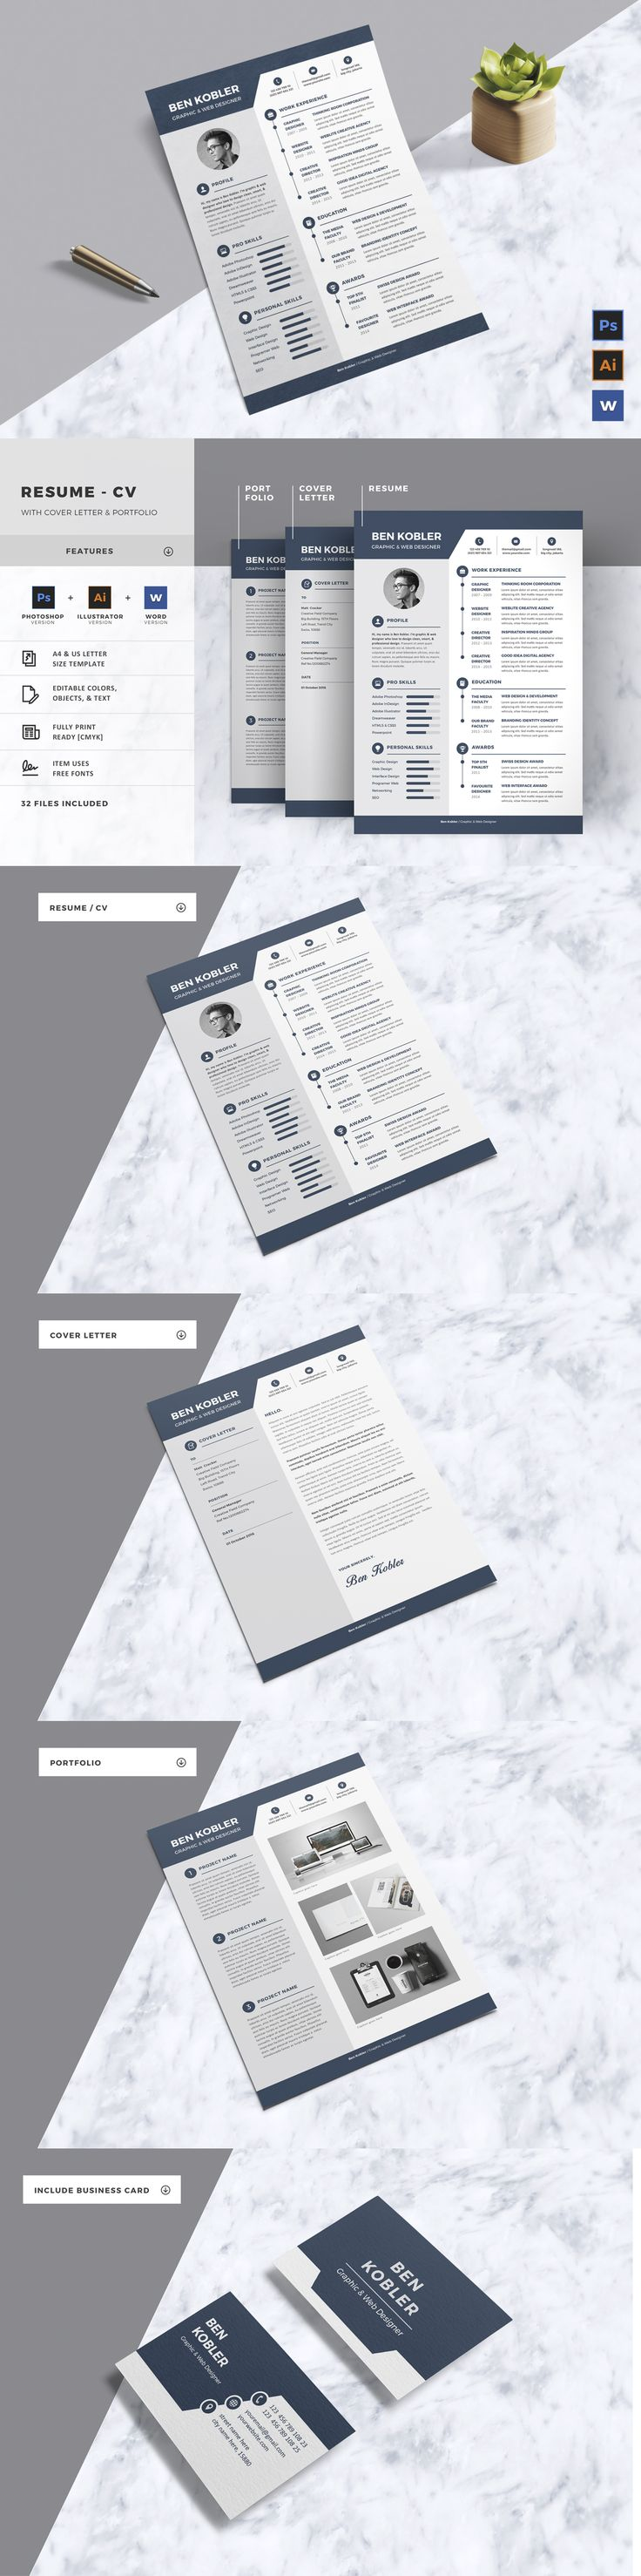 Job Skills To Put On A Resume Excel  Best Resume  Cv Design Tempaltes Images On Pinterest  Cv  Cover Letter Format For Resume Pdf with Resume For Rn Pdf Complete Resume Template Ai Eps Psd Ms Word Housekeeping Resume Skills Excel